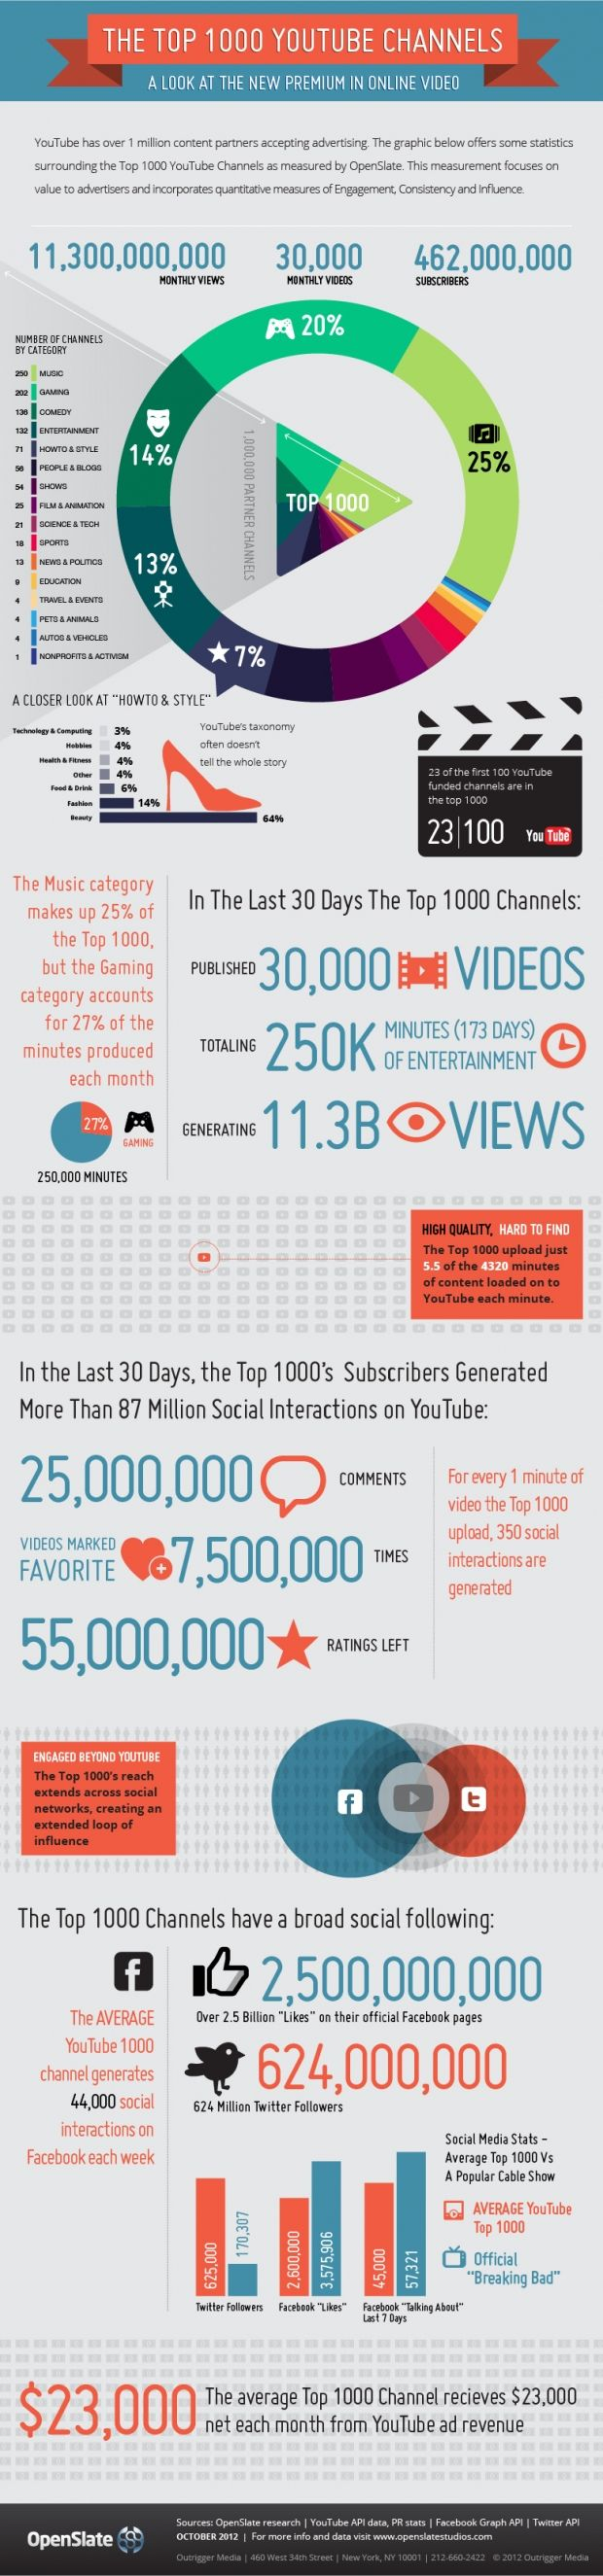 YouTube Earnings For The Top 1,000 Partners [Infographic]    RT @TheDudeDean YouTube Earnings For The Top 1,000 Partners [Infographic] http://su.pr/1RCTjG Via @Minervity